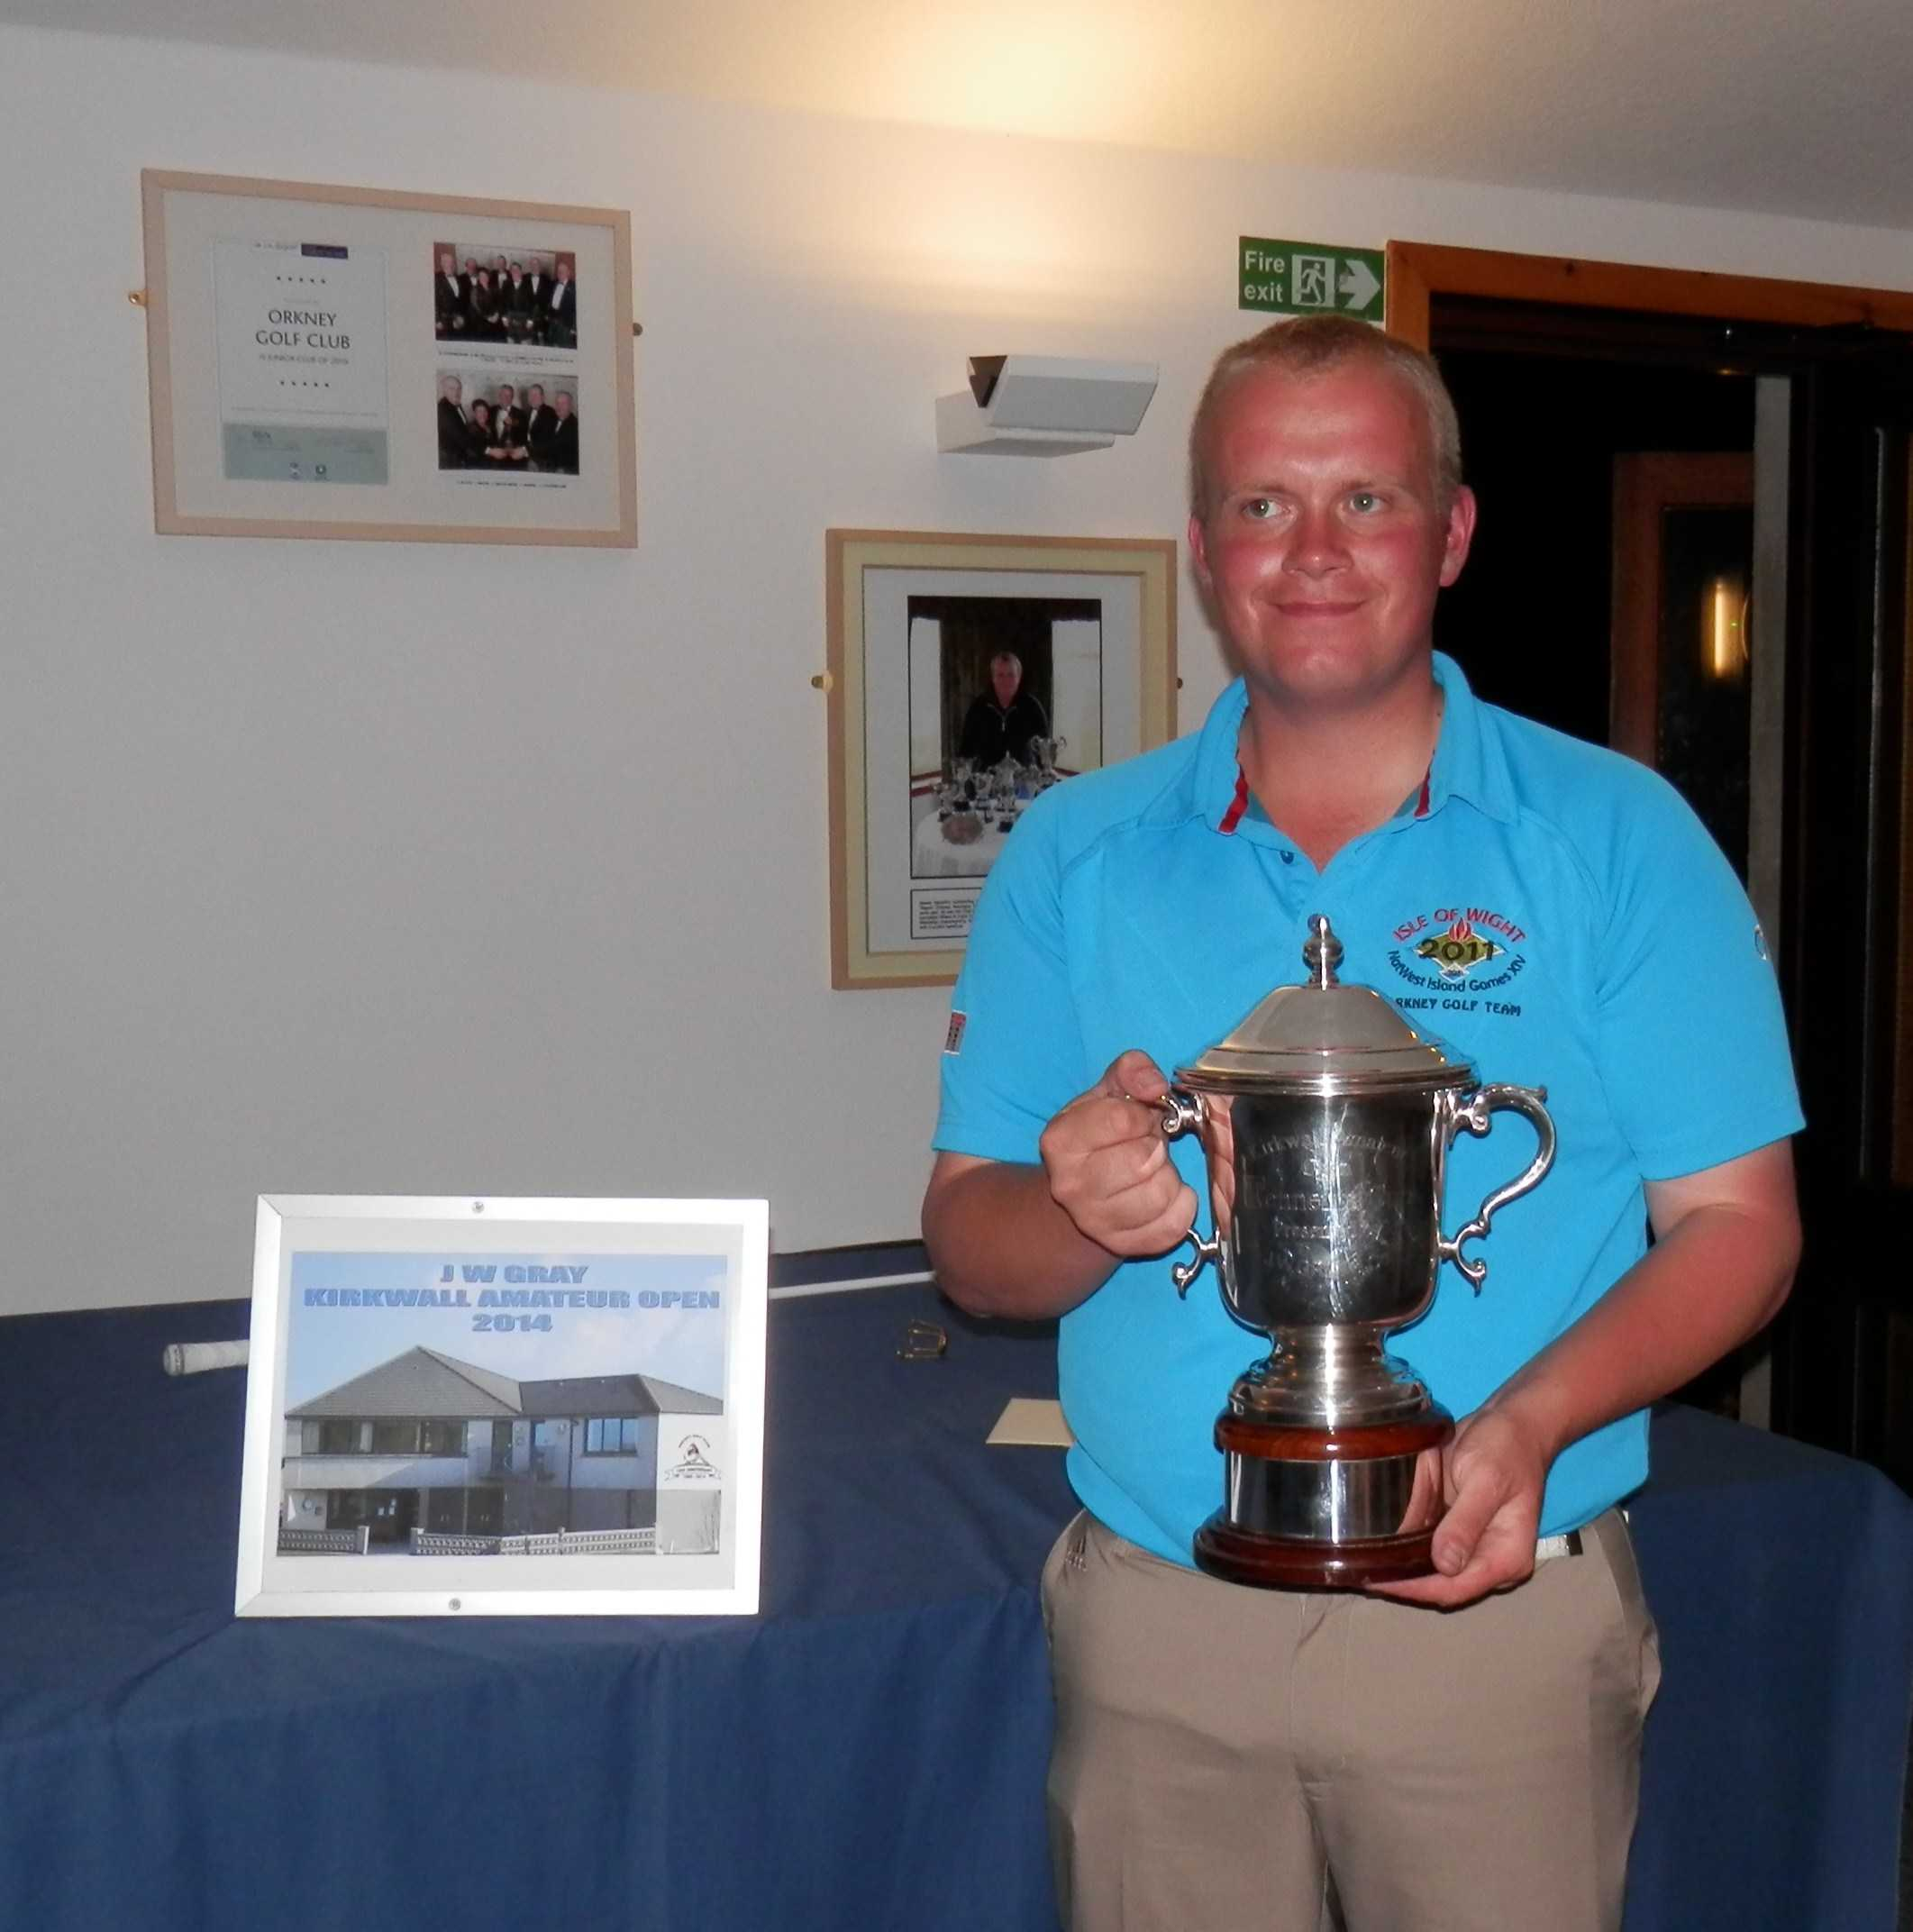 2014 winner of J W Gray Cup [Kirkwall Open gross] Steven Rendall